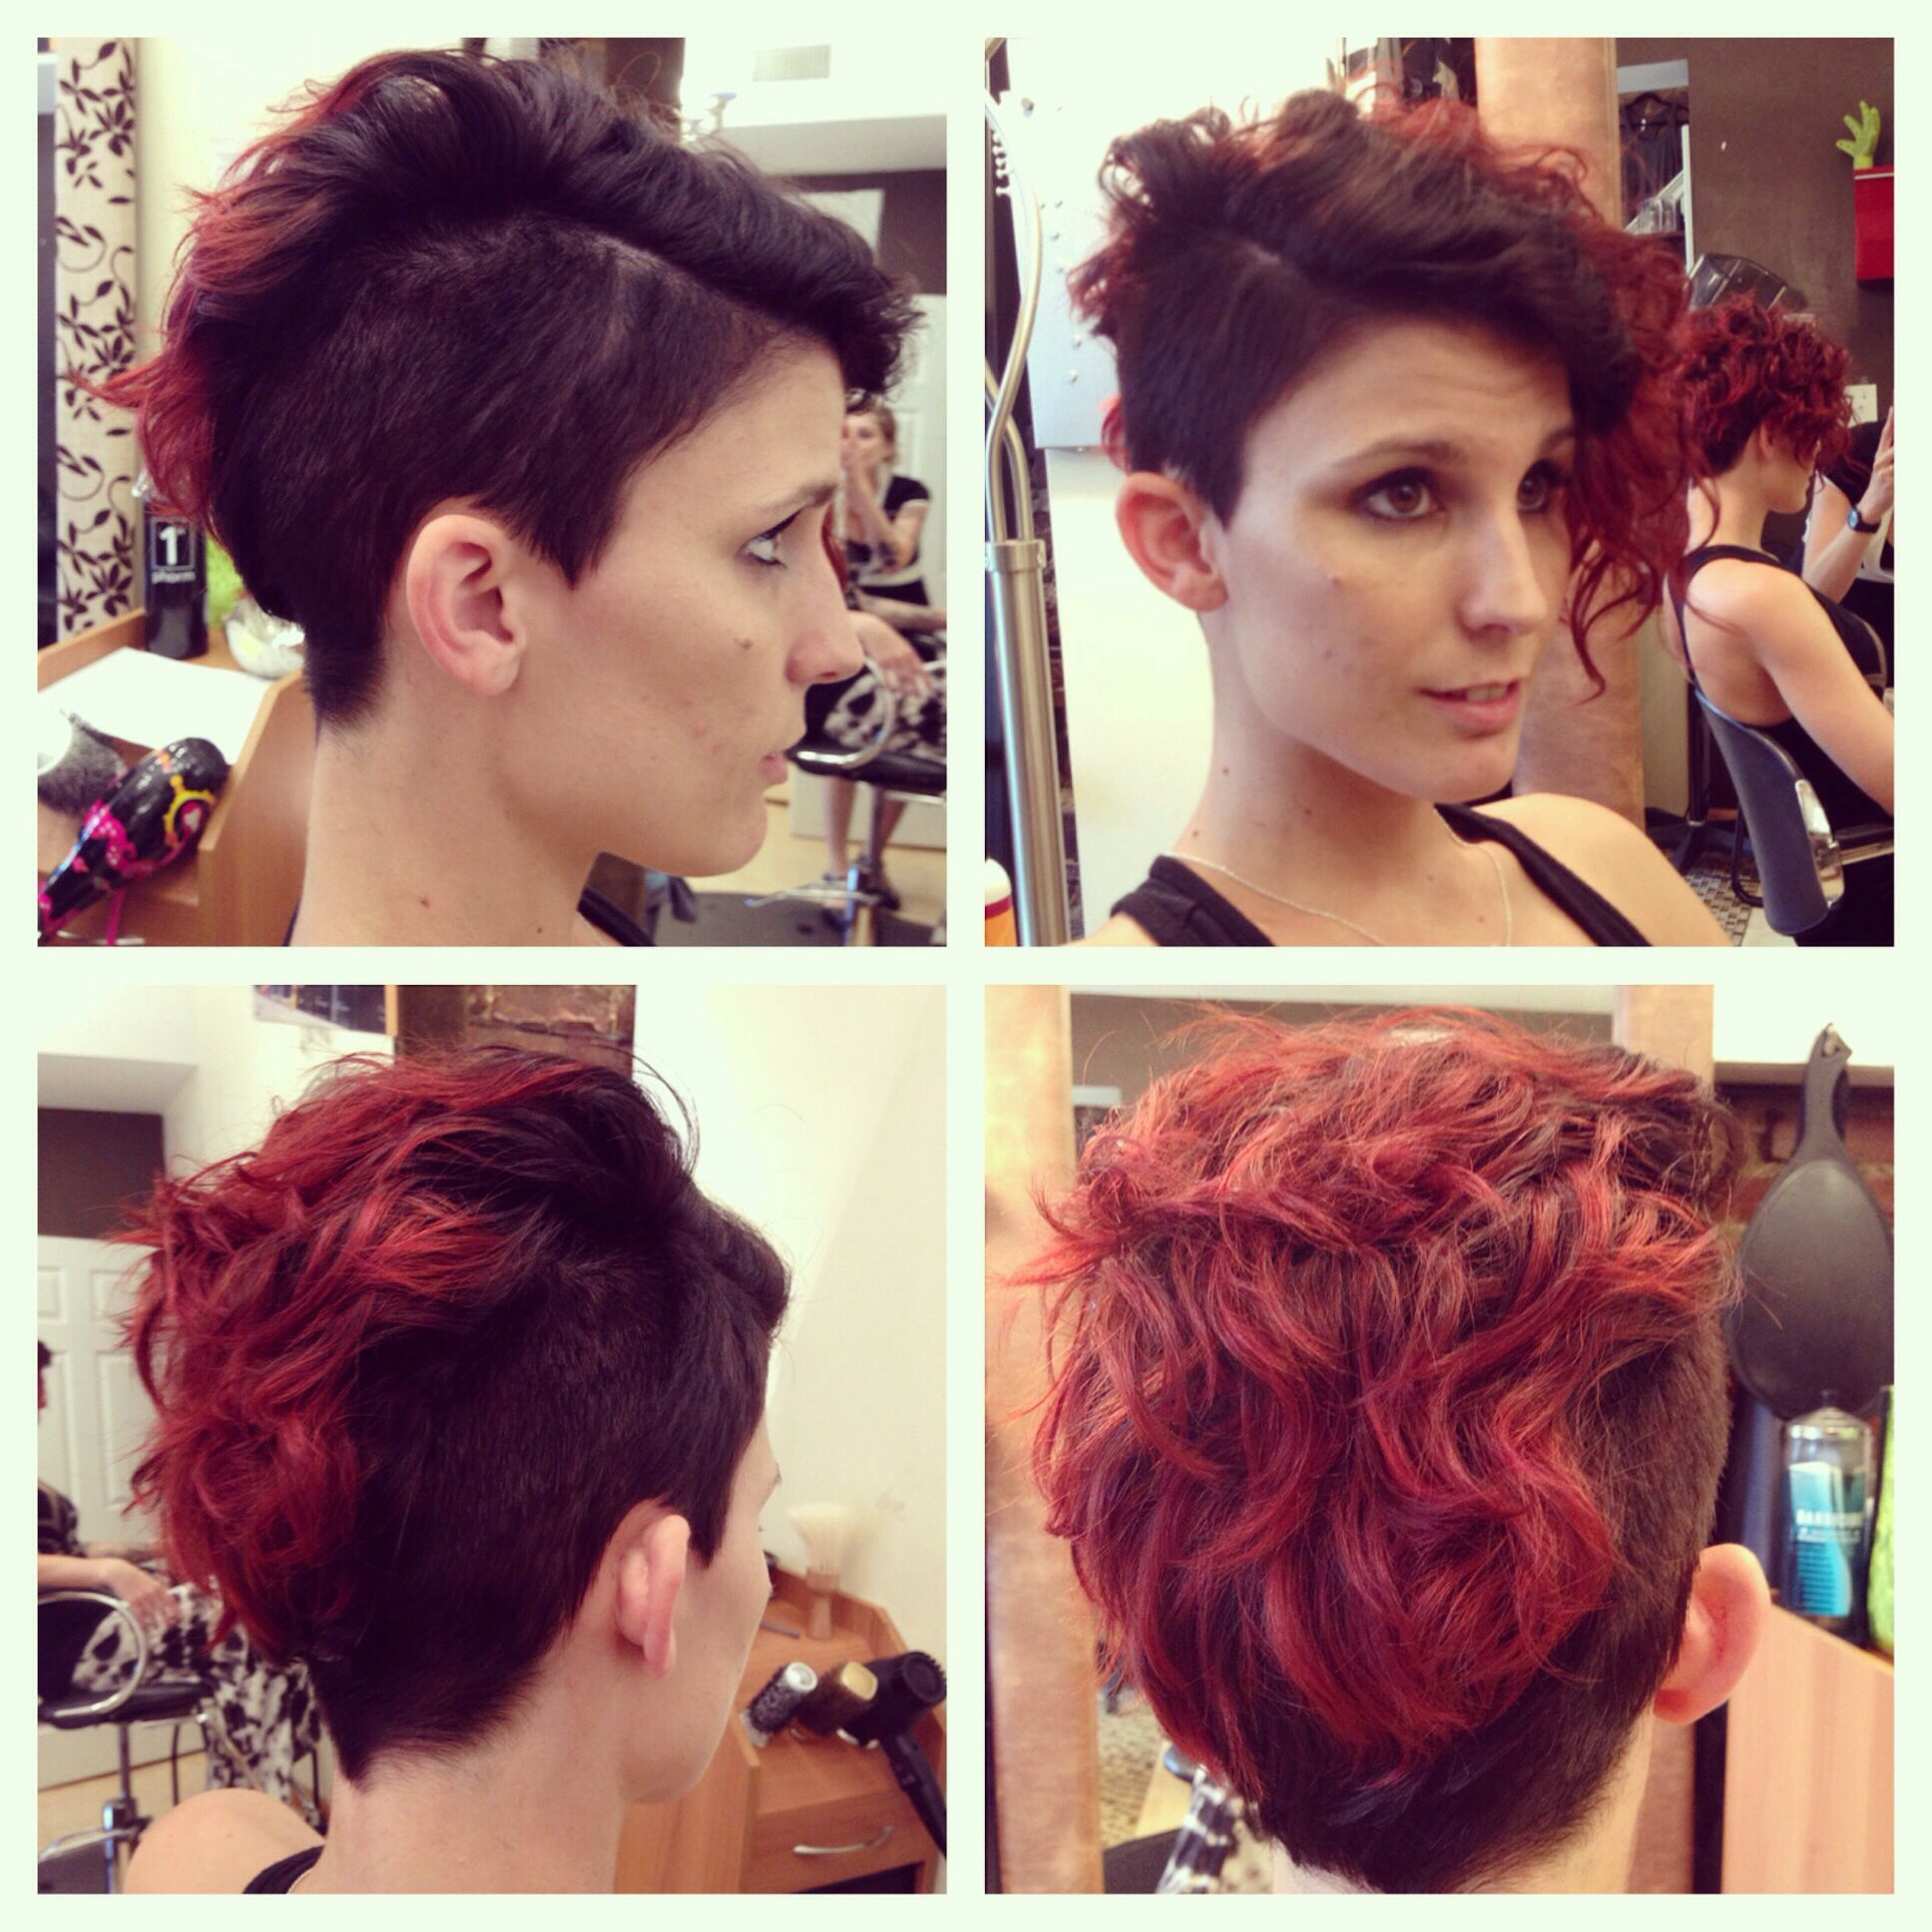 Undercut Curly Hair Shaved Sides Female